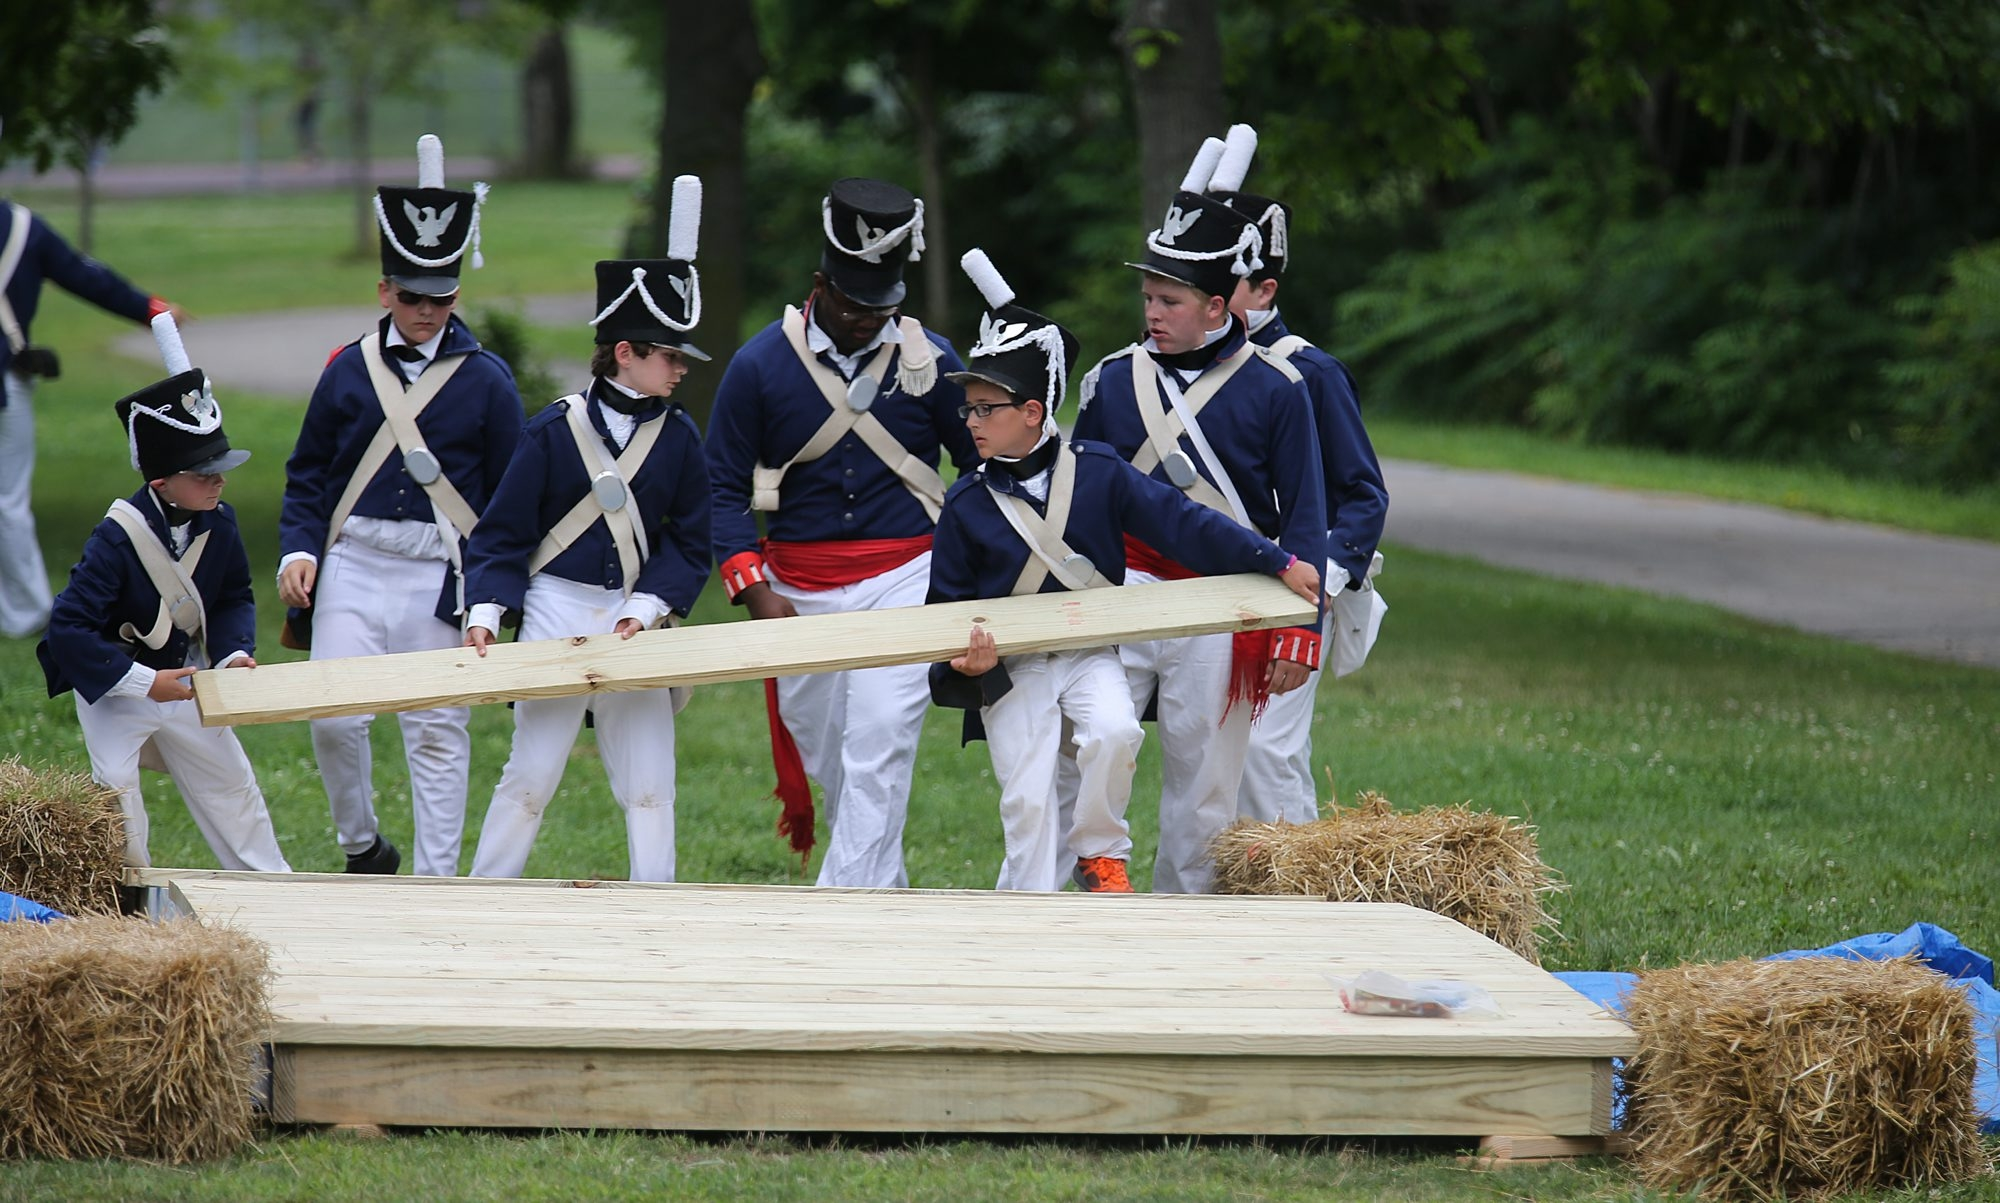 American troops disassemble a replica of the Scajaquada Creek Bridge to foil advancing British troops during a re-enactment of a famous battle during the War of 1812 on Sunday.